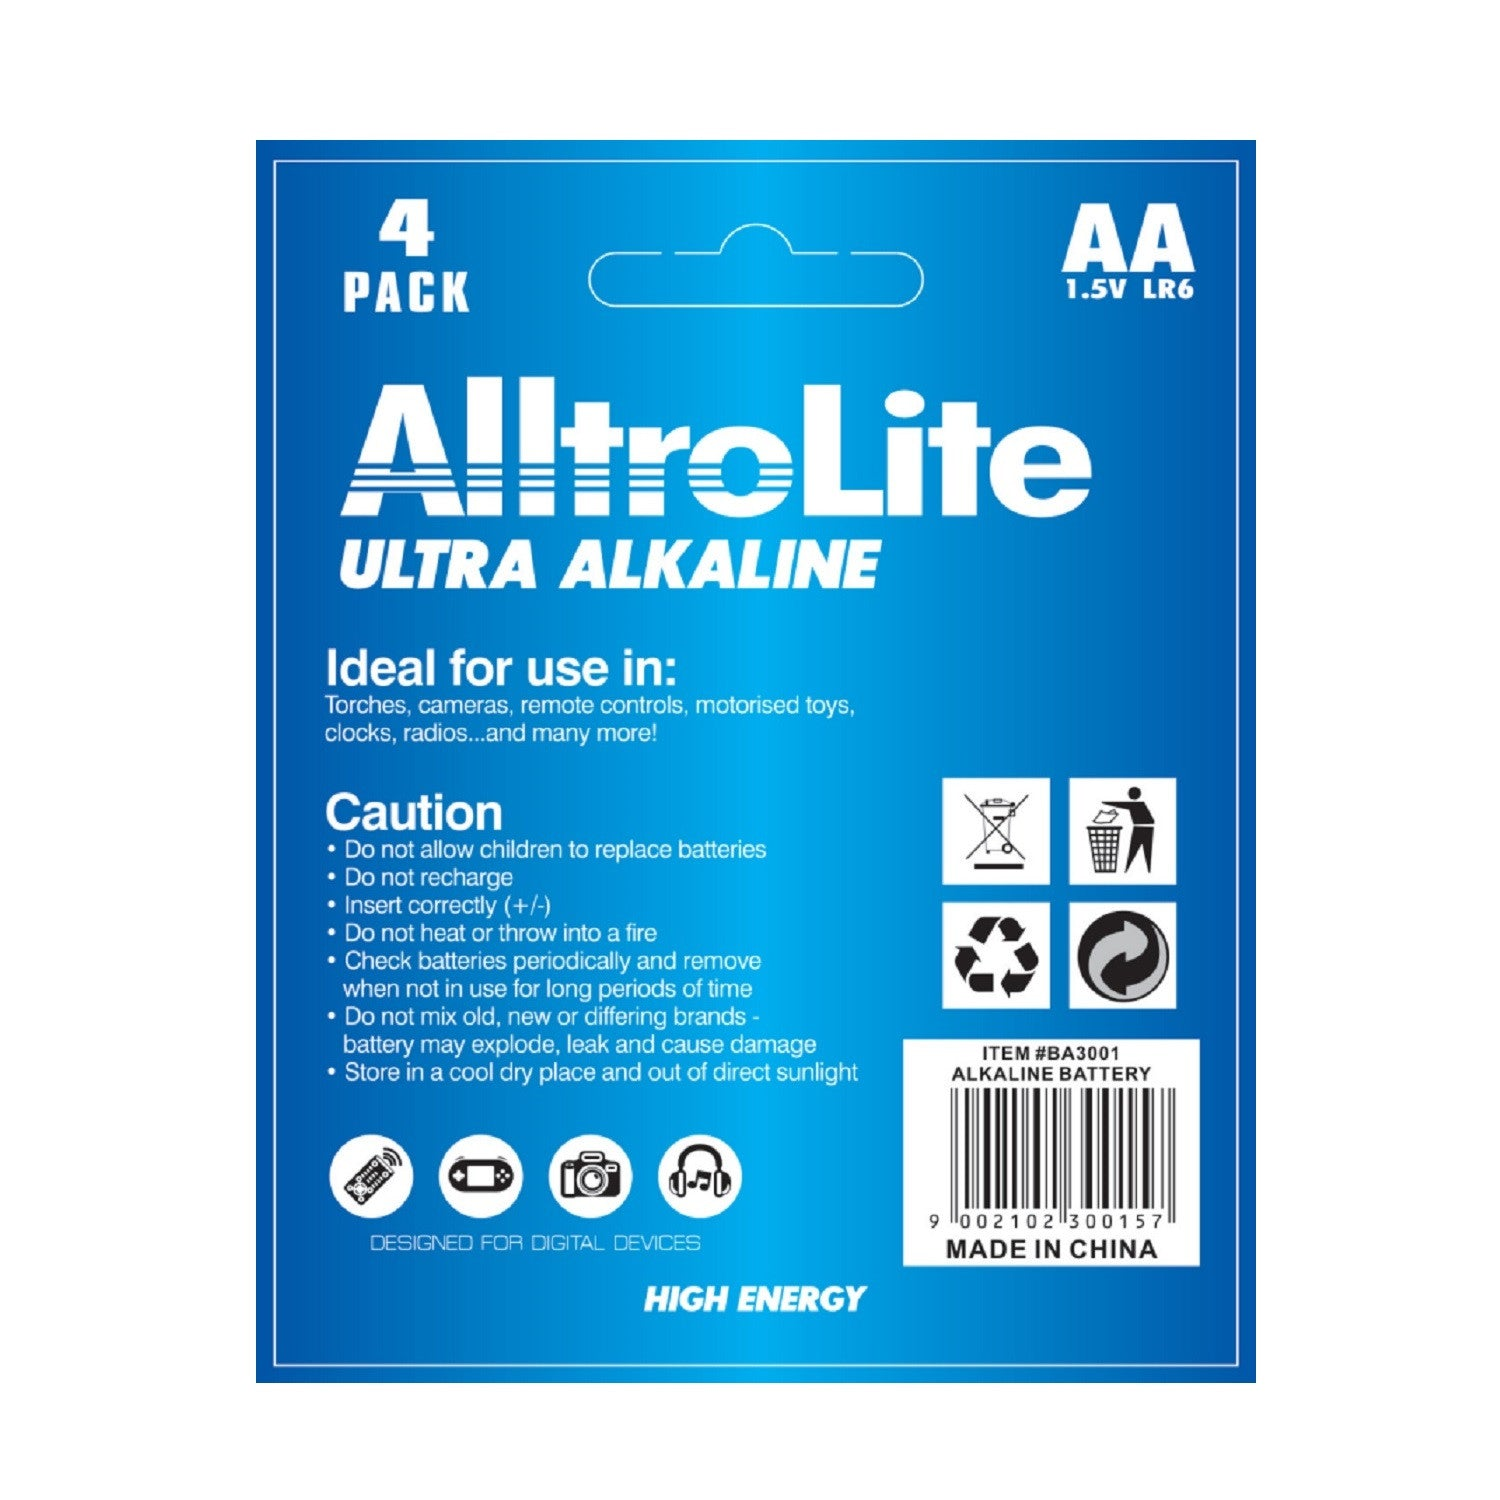 AA Alkaline Battery 4 Pack - alltrolite